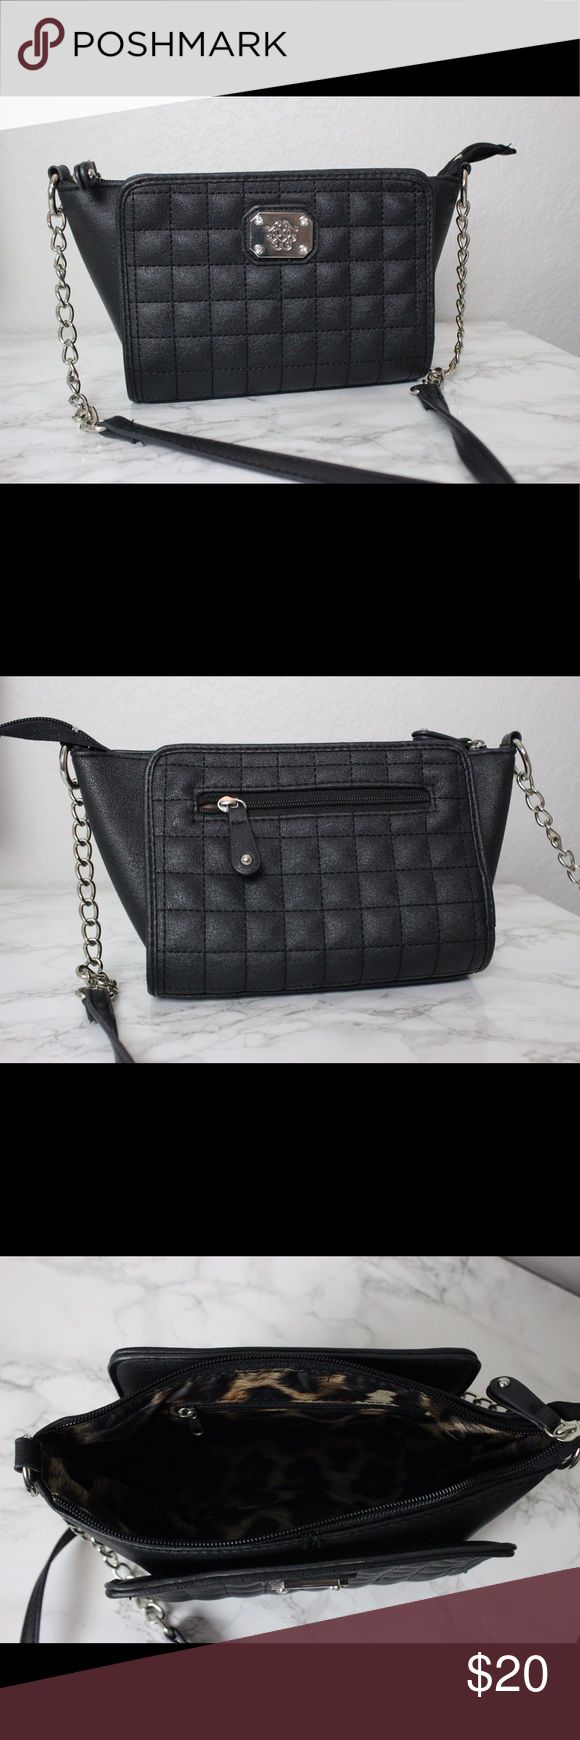 Jessica Simpson black cross body bag One of my all time favorite cross bodies Jessica Simpson Bags Crossbody Bags